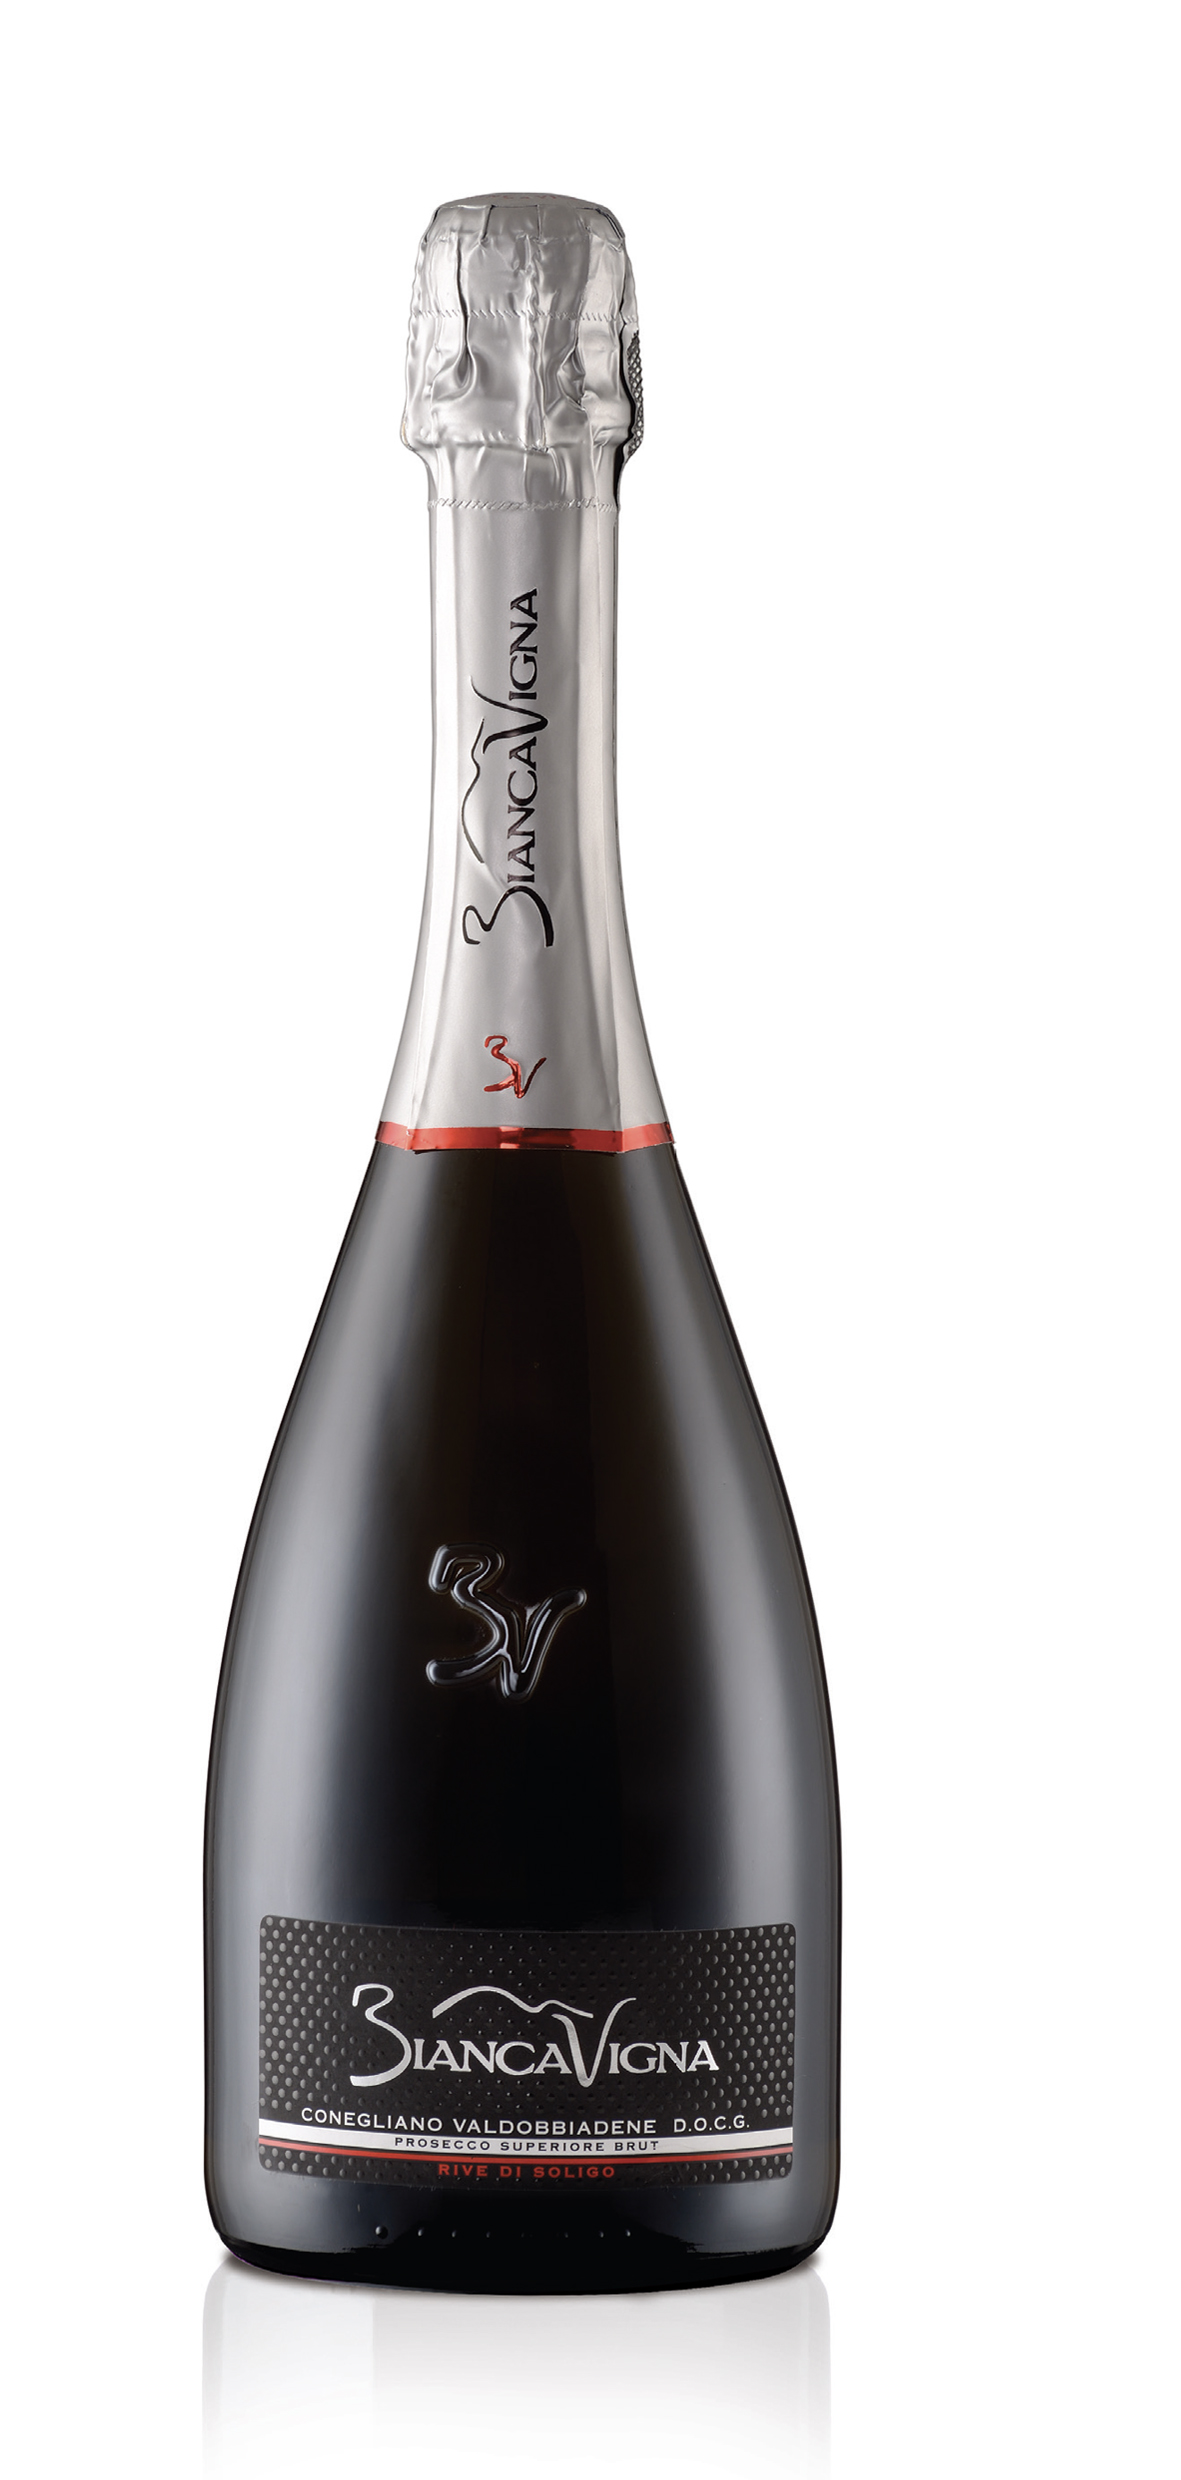 Wine-Bianca-Vigna-single-Brut-Conegliano.jpg